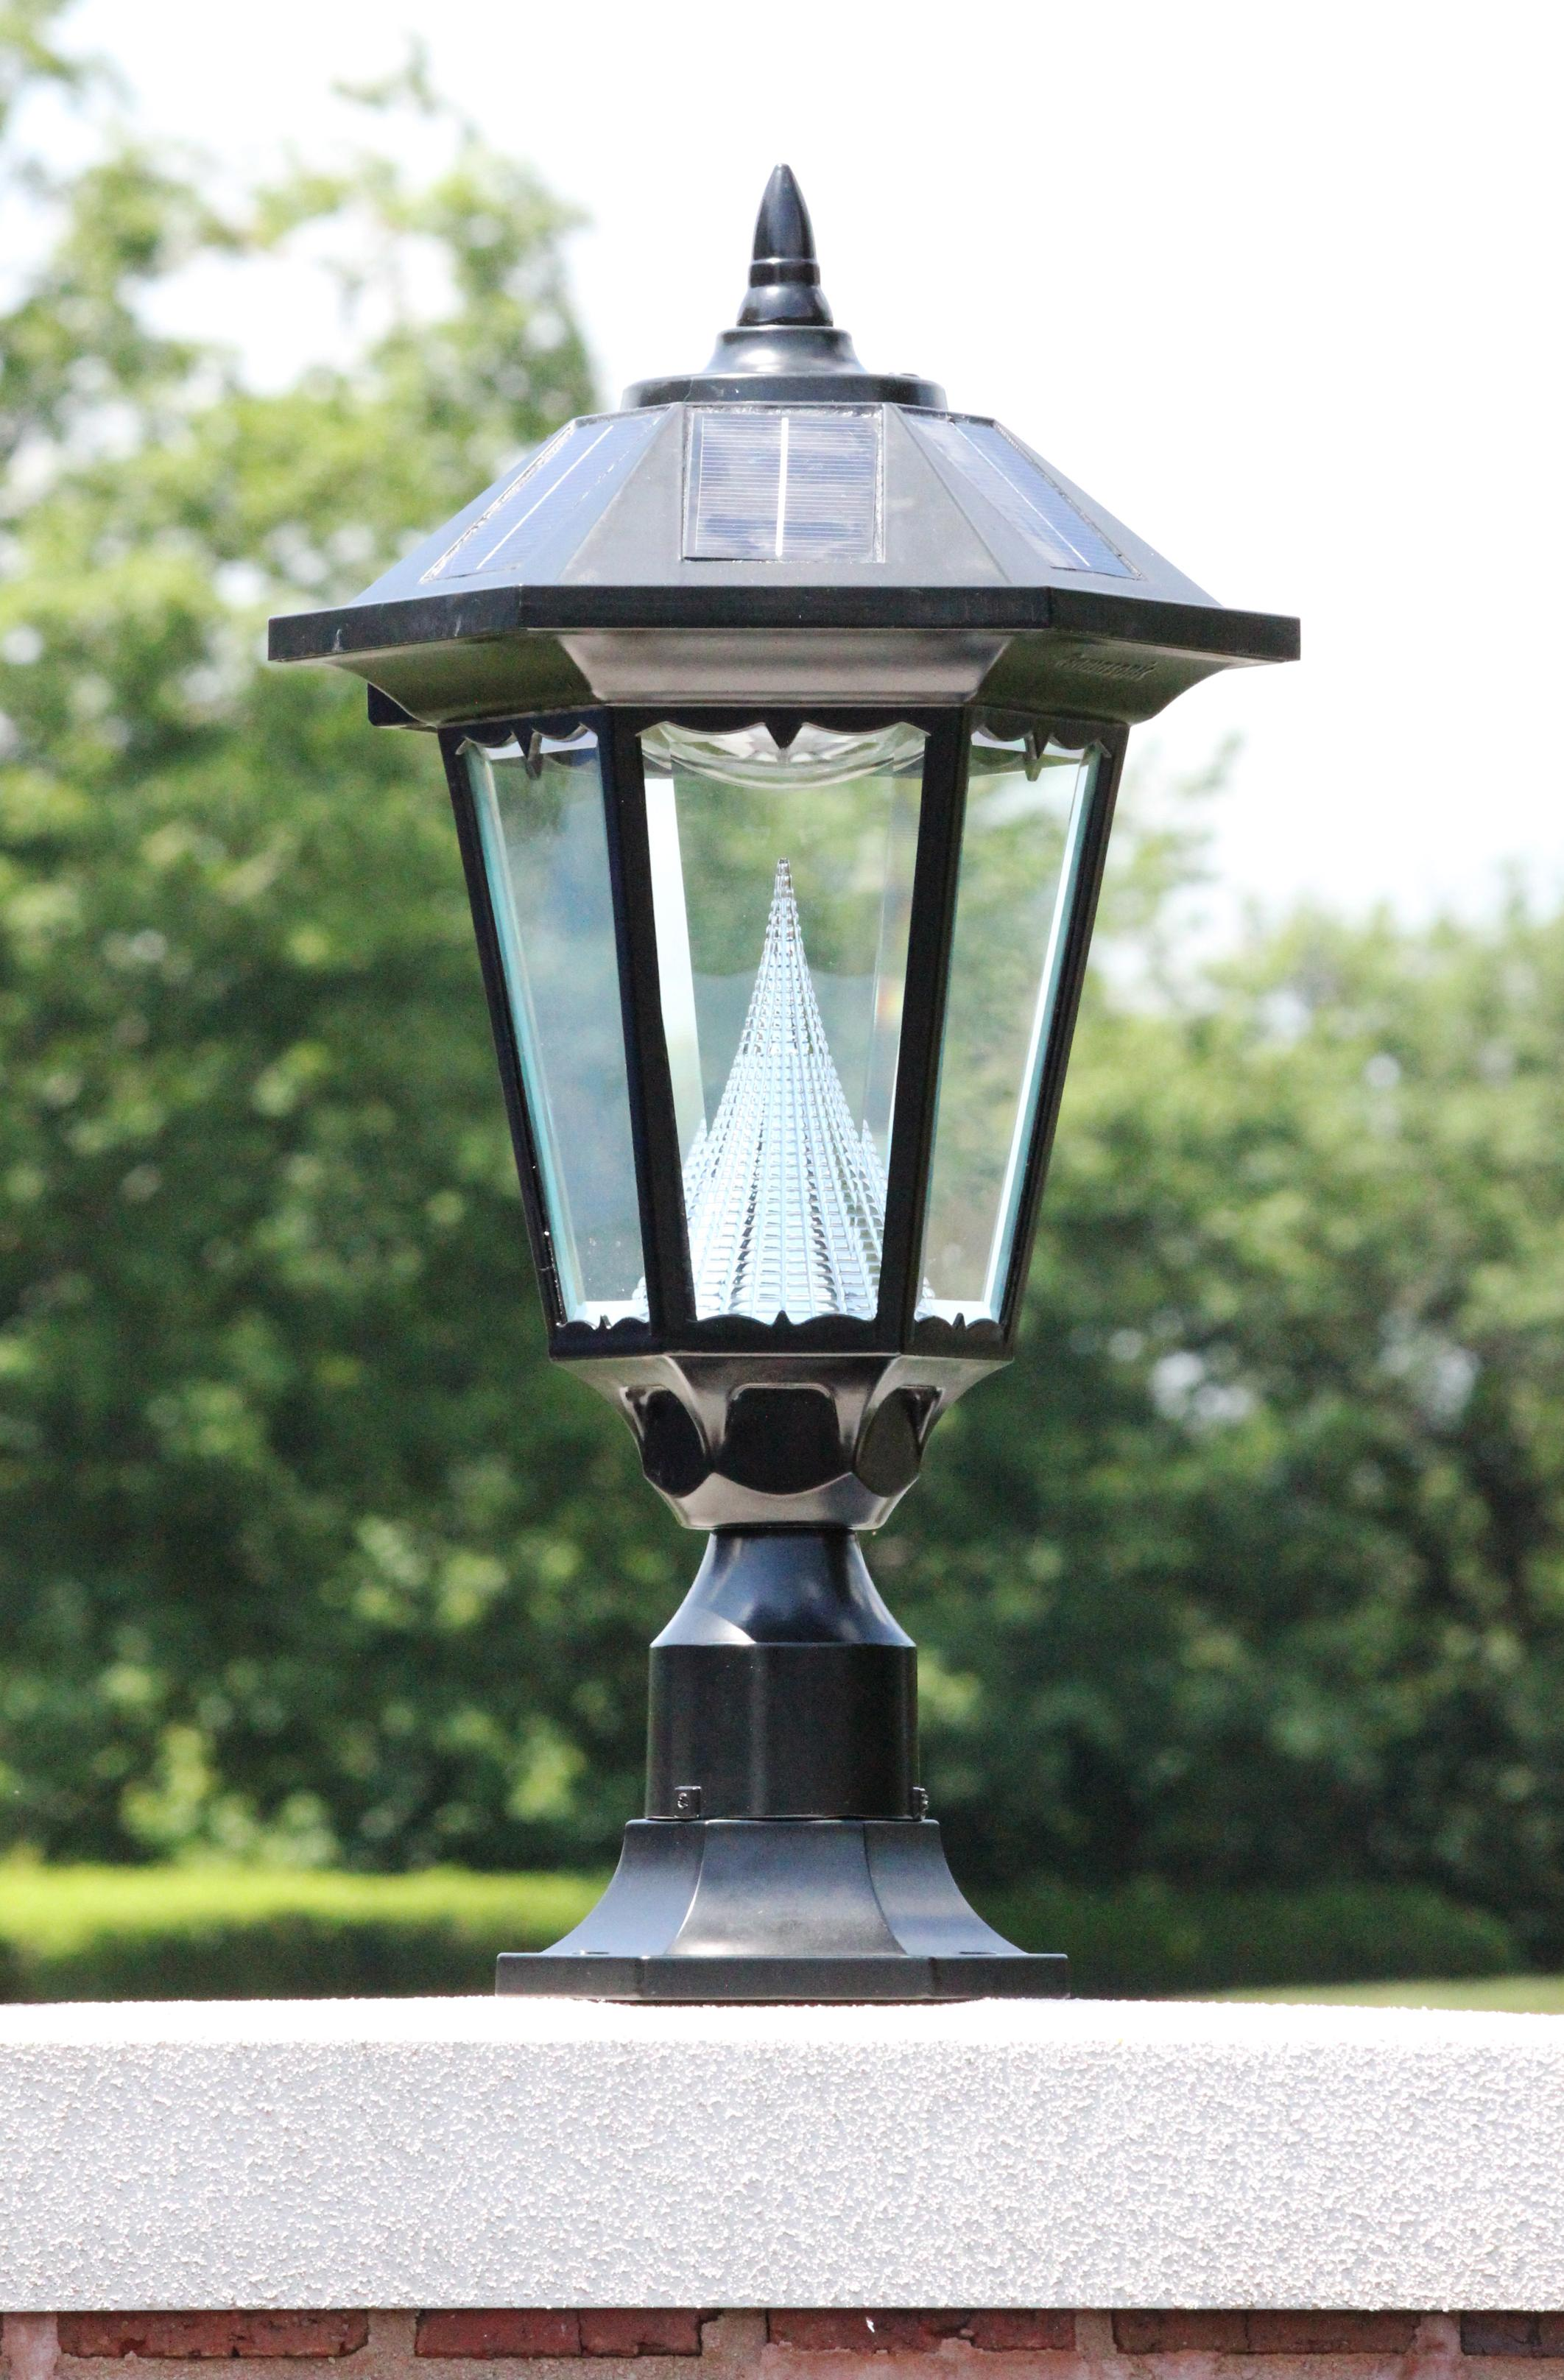 Gama Sonic Windsor Outdoor Solar Light GS 99F On Its Pier Mount Outside